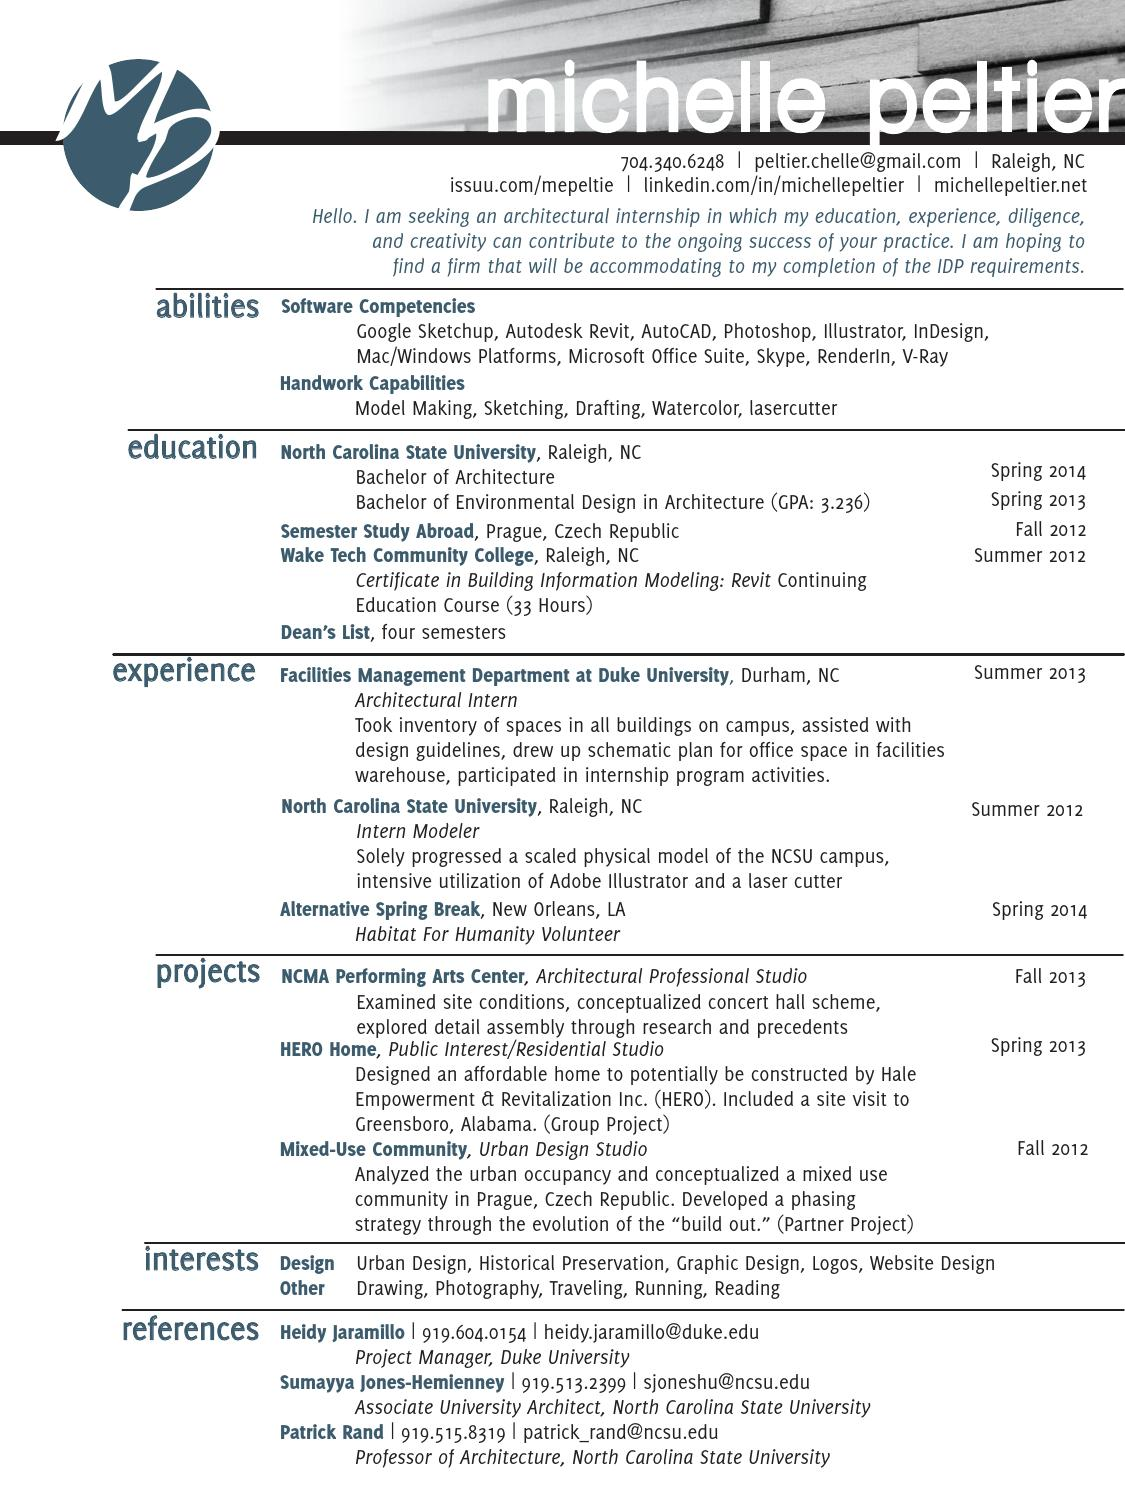 michelle peltier cv  work samples by michelle peltier